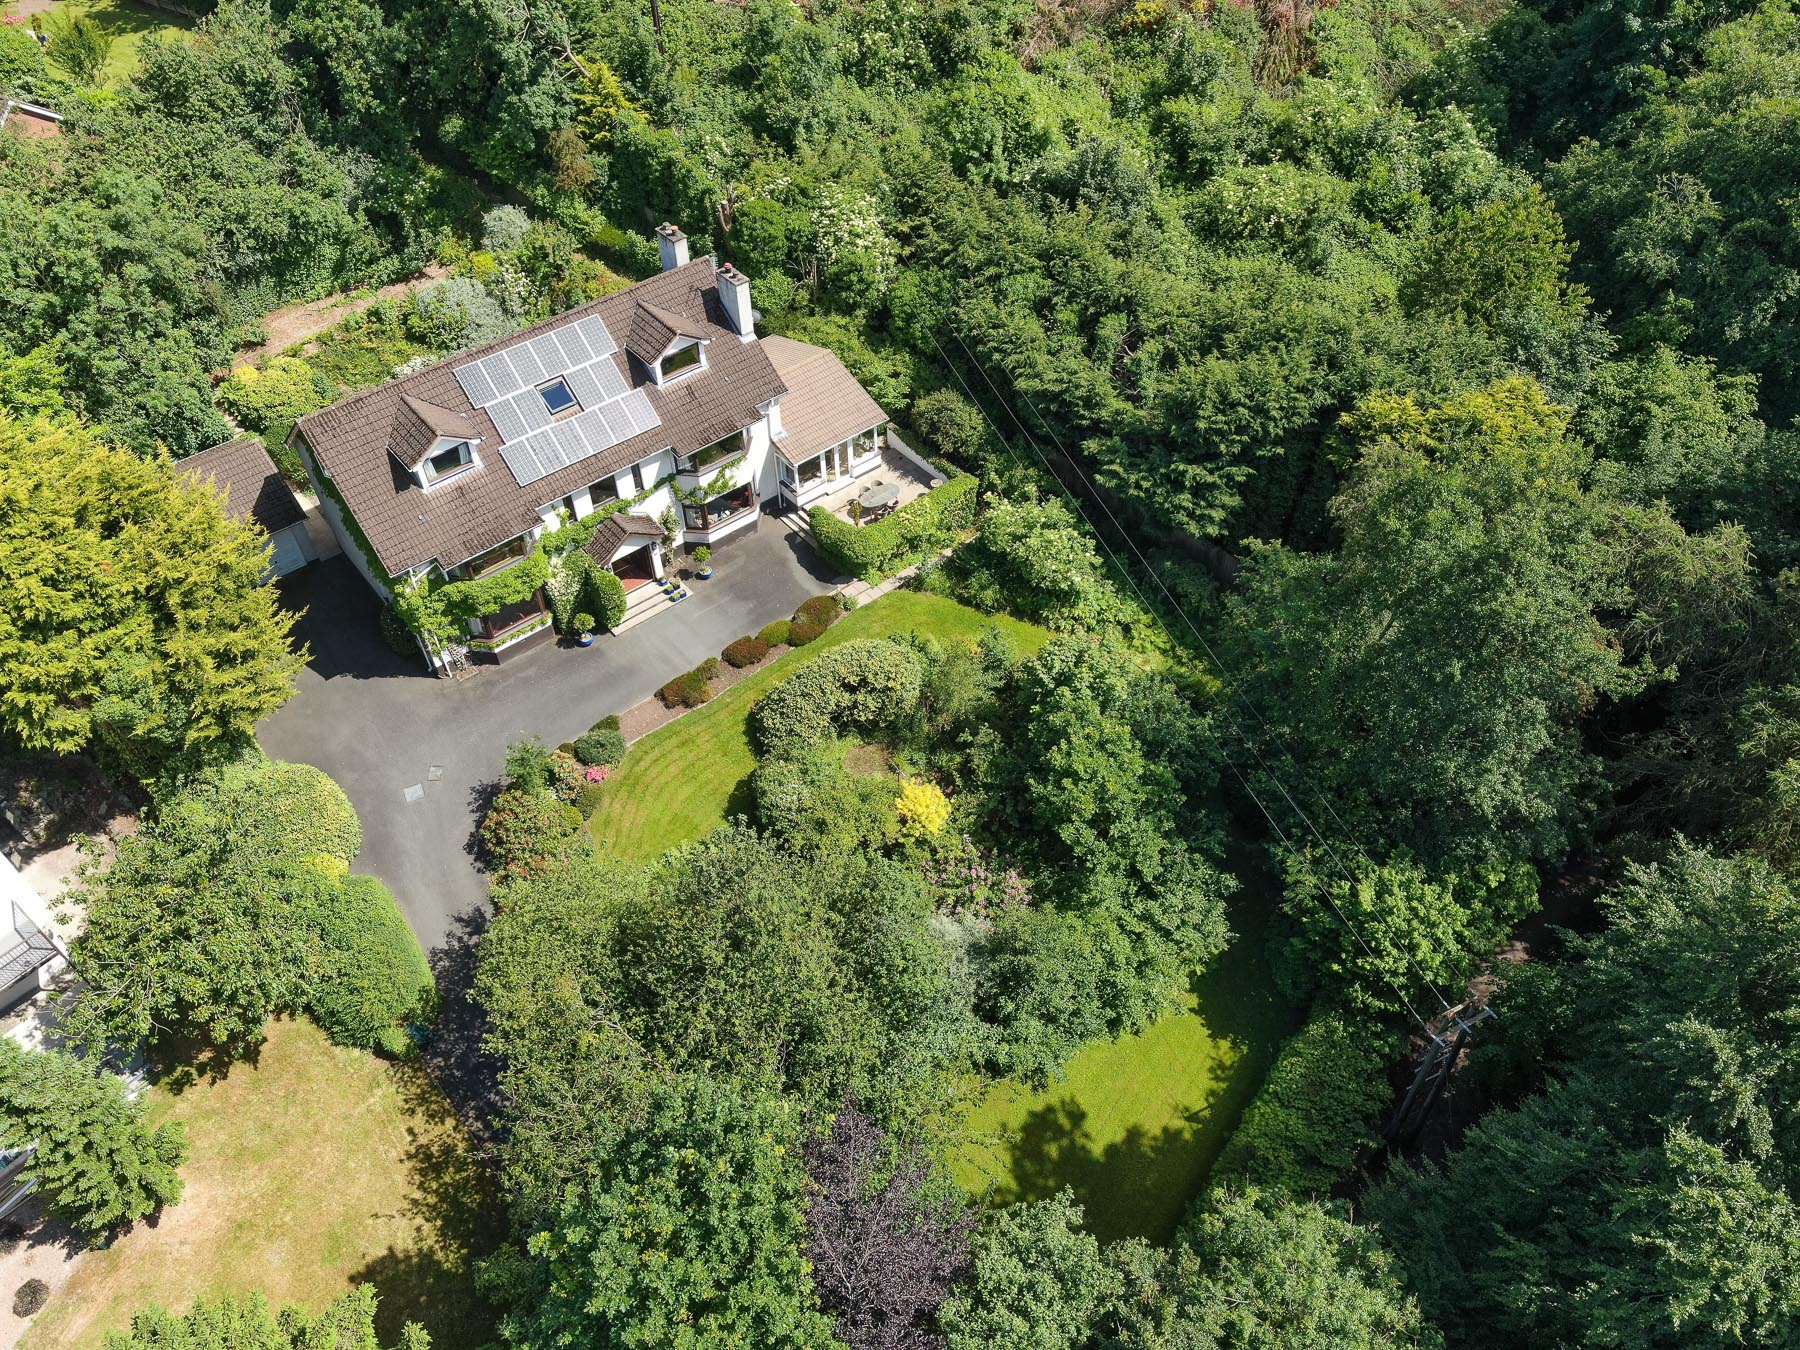 Aerial drone photography and video production services Dublin and Ireland portfolio - residential photography of Glenside, Northern Ireland. Photo 0010